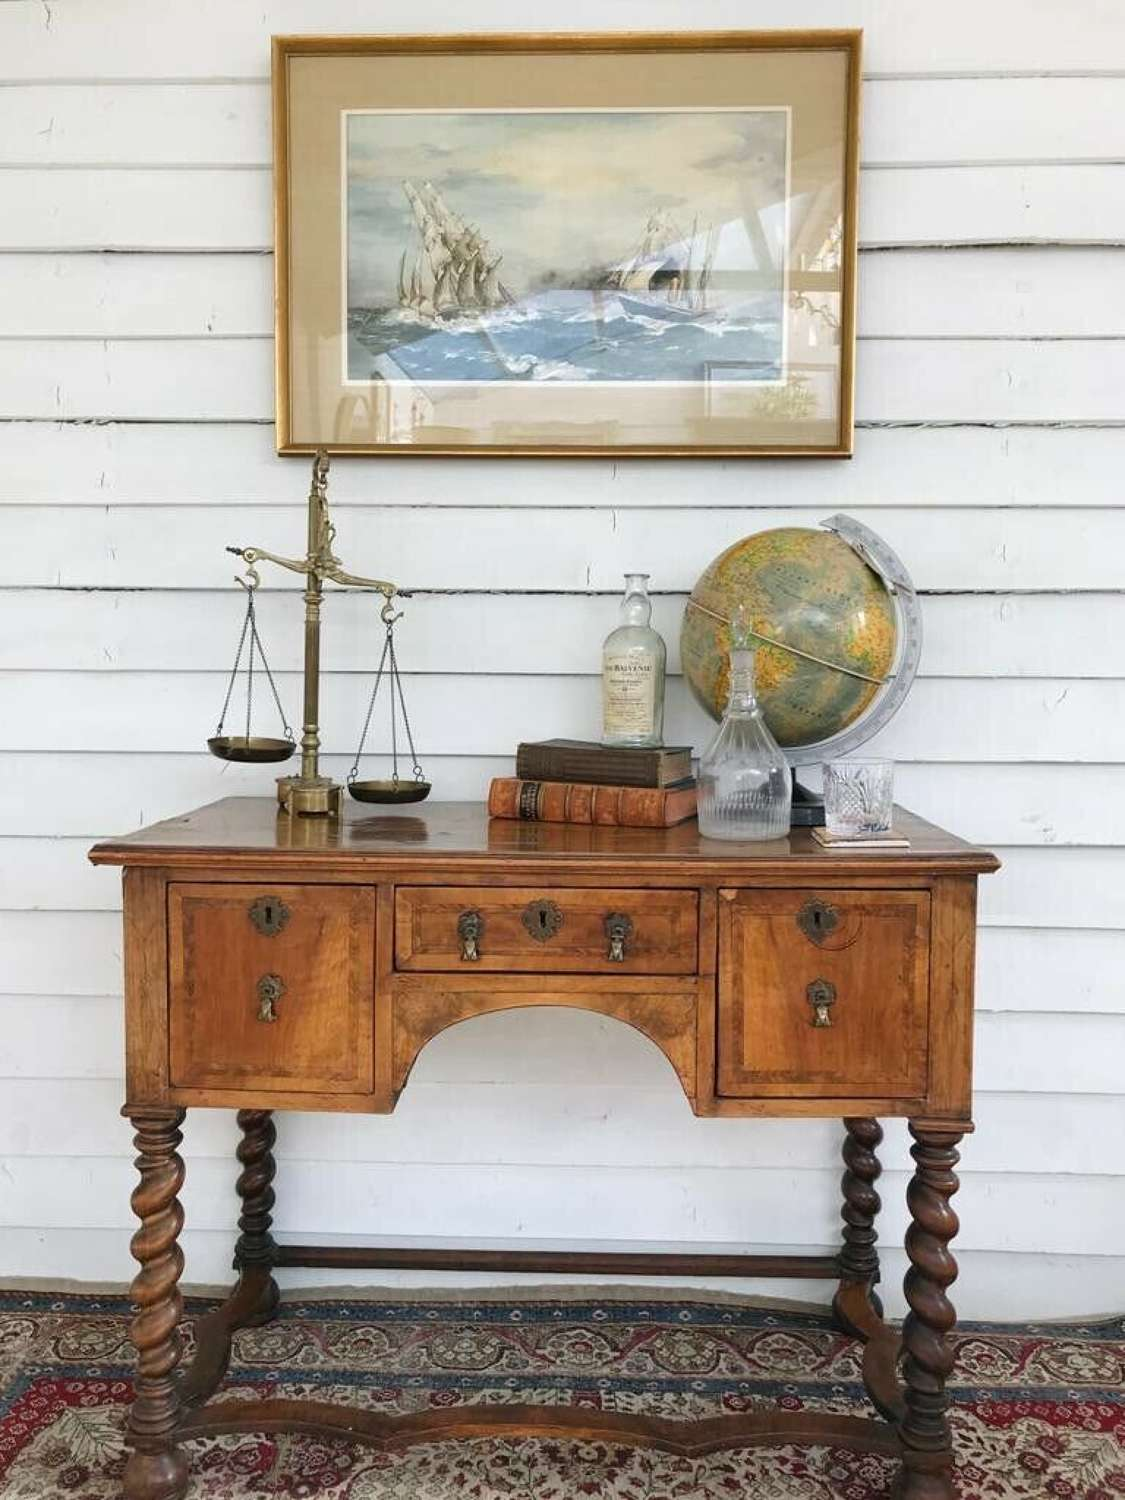 18th Century walnut sideboard